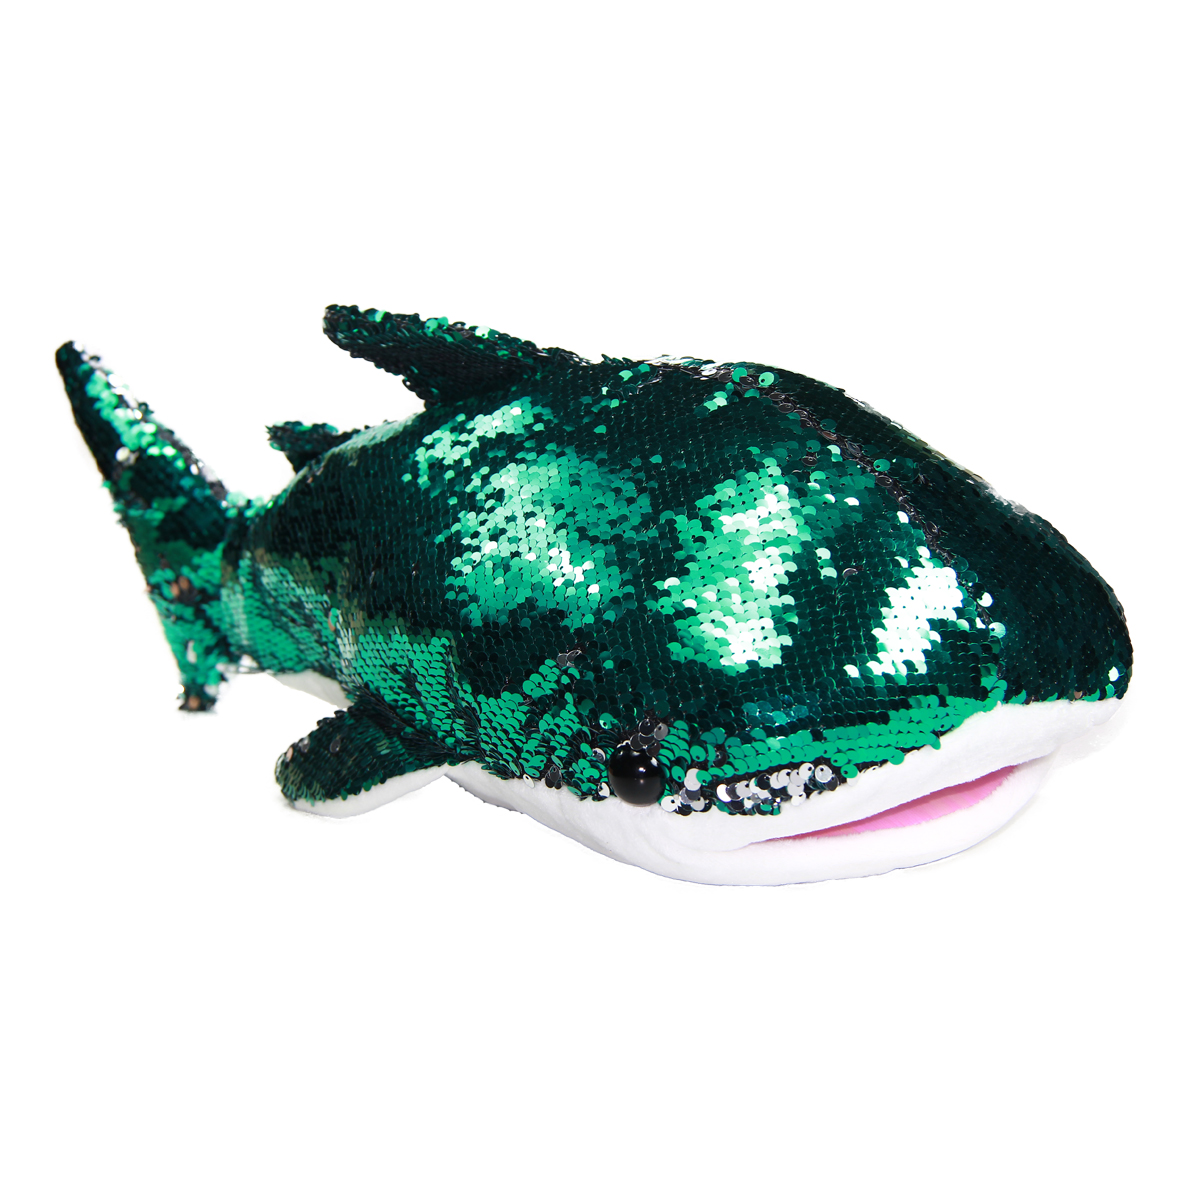 Shark Plush Doll, Flip Sequin, Big Size, Green Silver 17 Inches